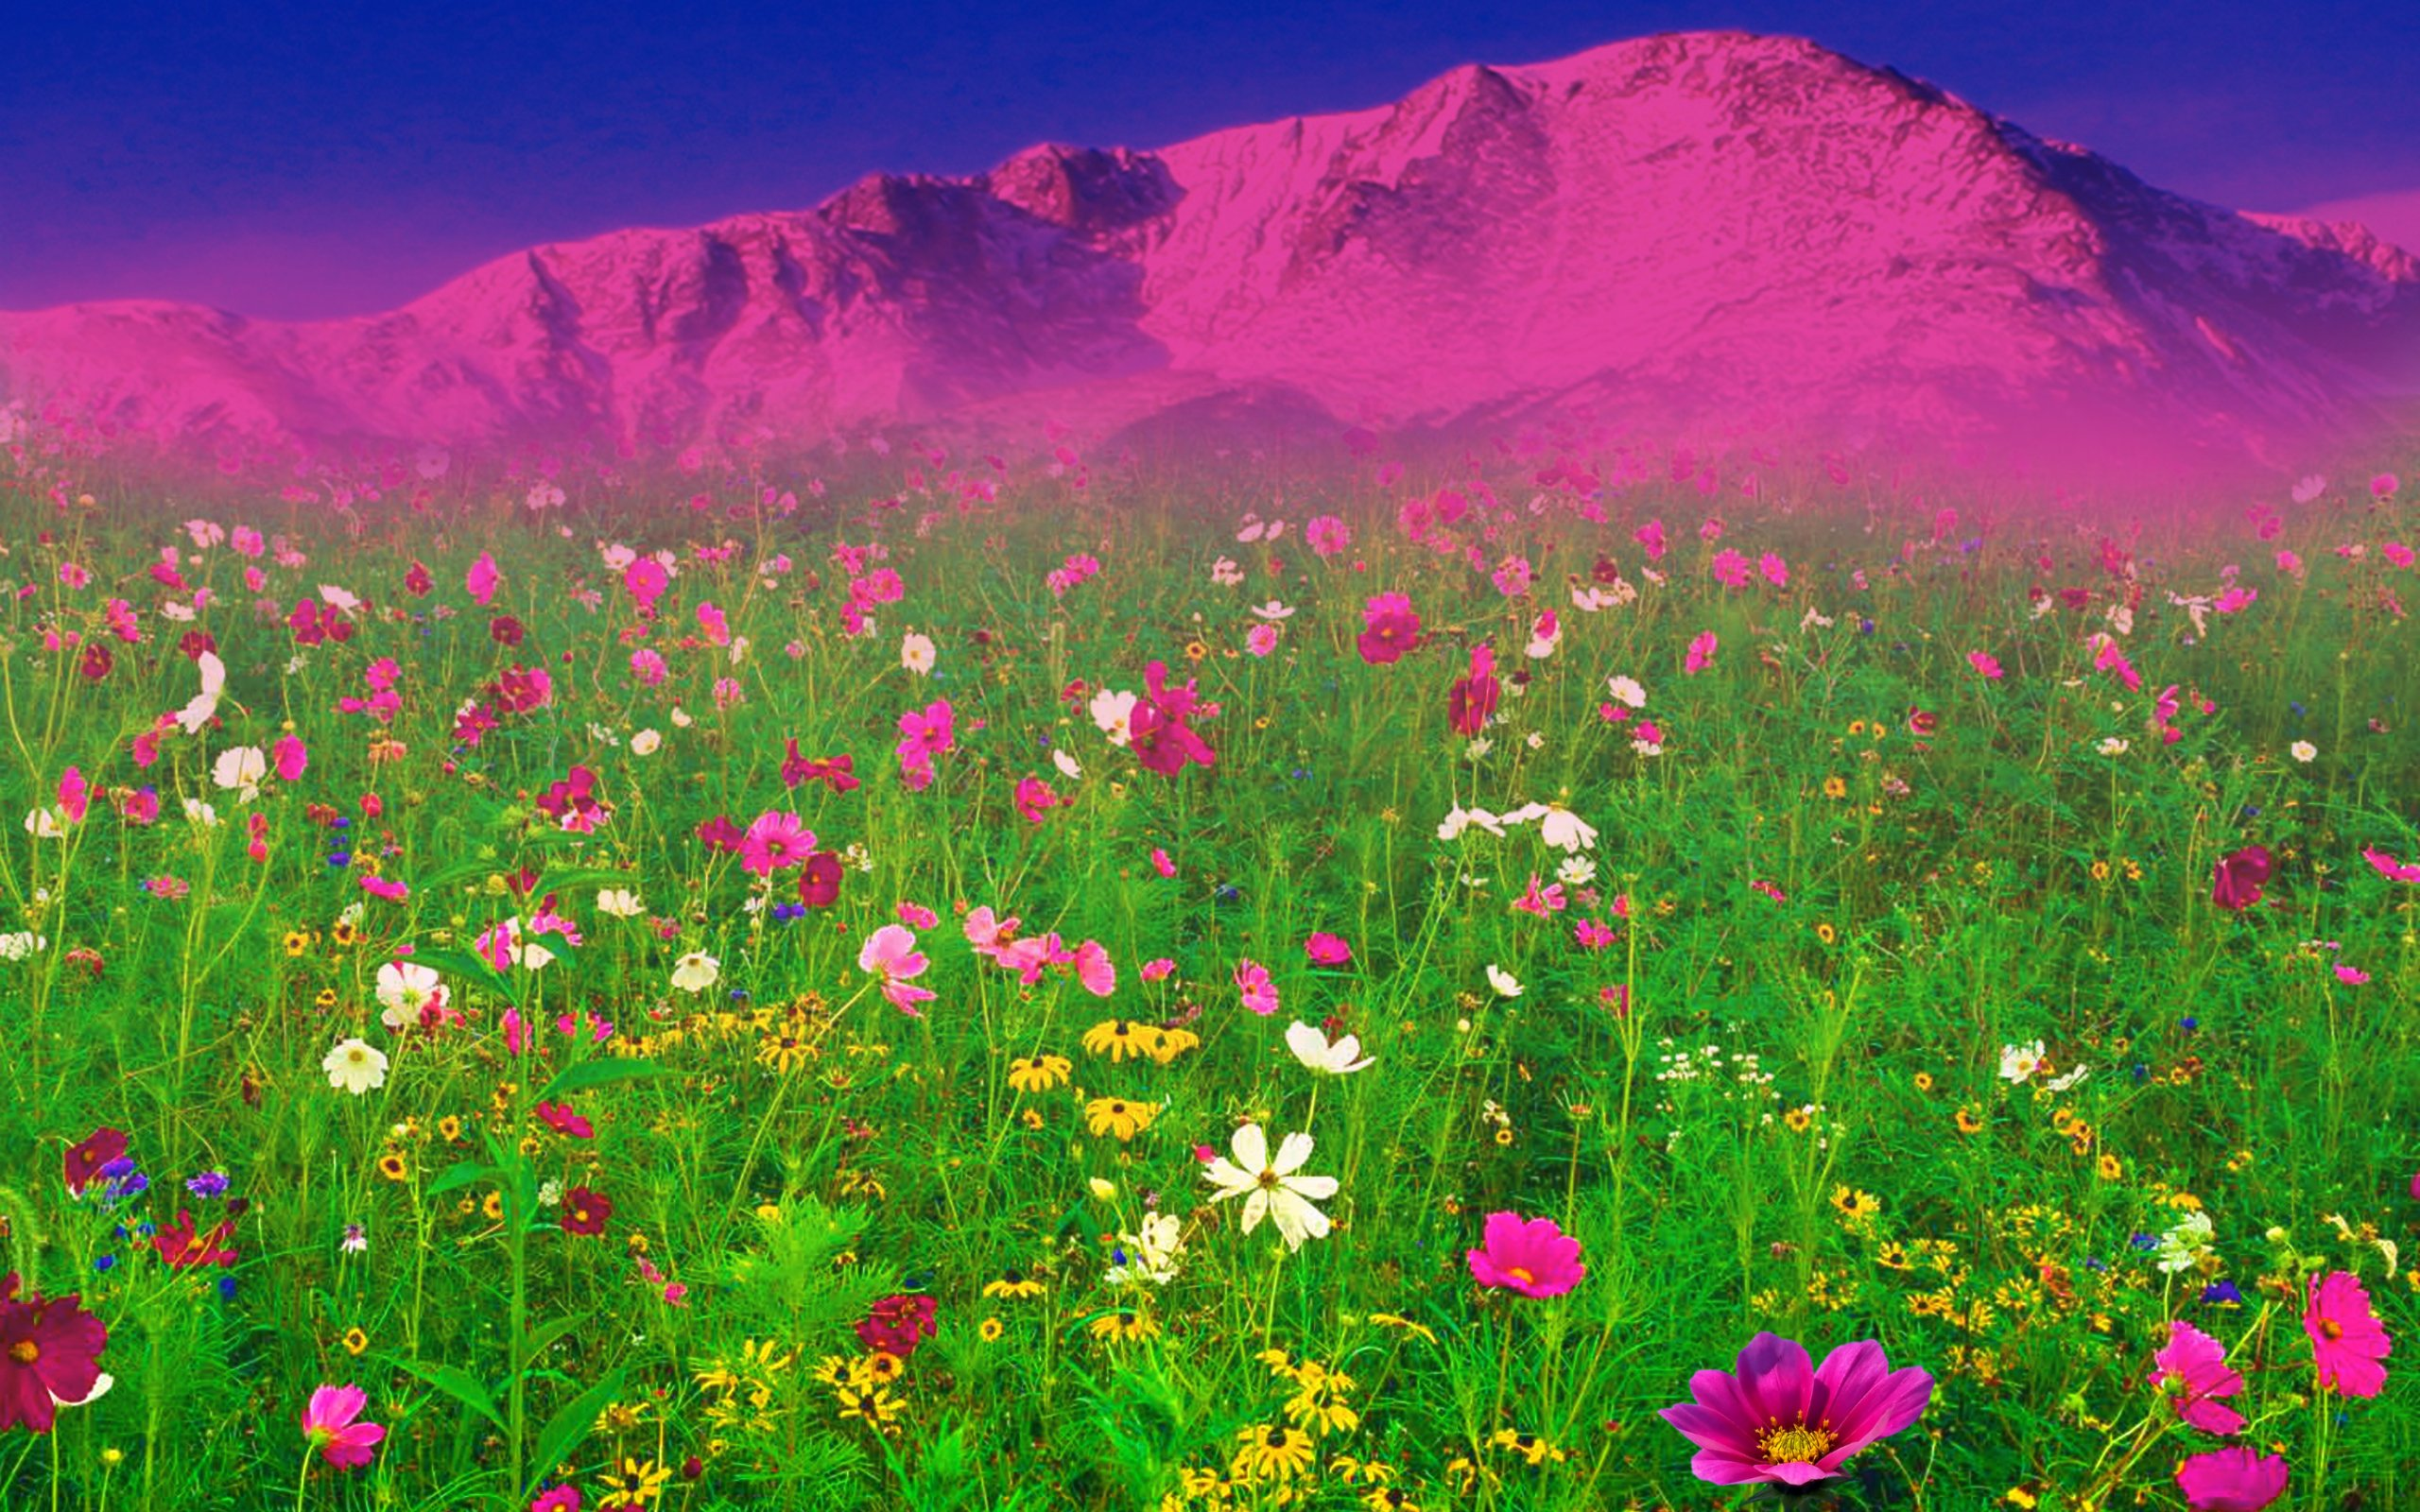 Field Of Spring Flowers Wallpaper Wallpapersafari